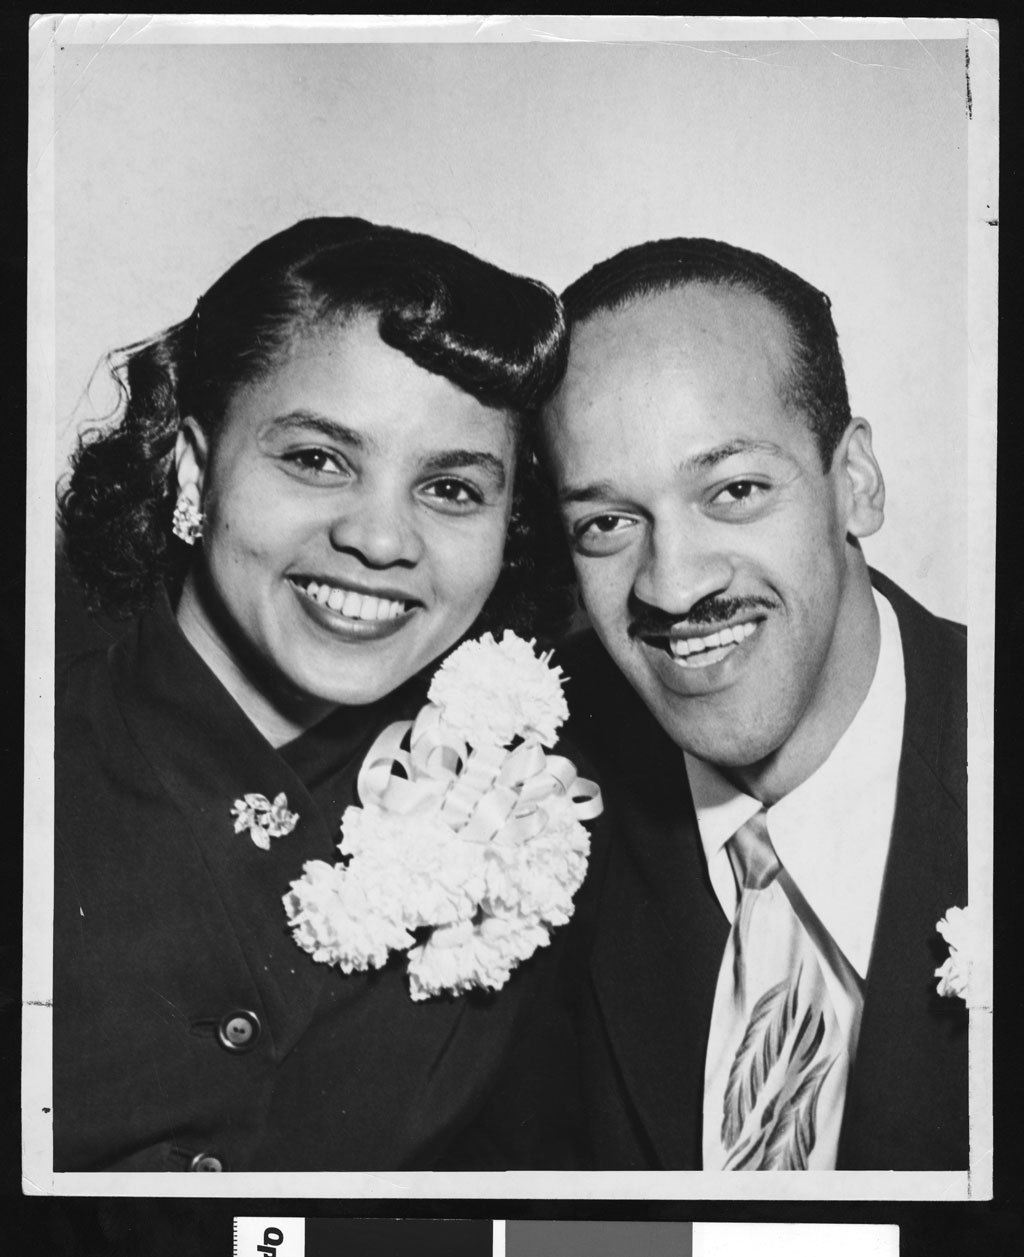 Portrait of Rosemary Goode & Lewis Hudson, Los Angeles, circa 1951-1960. Via USC Libraries.